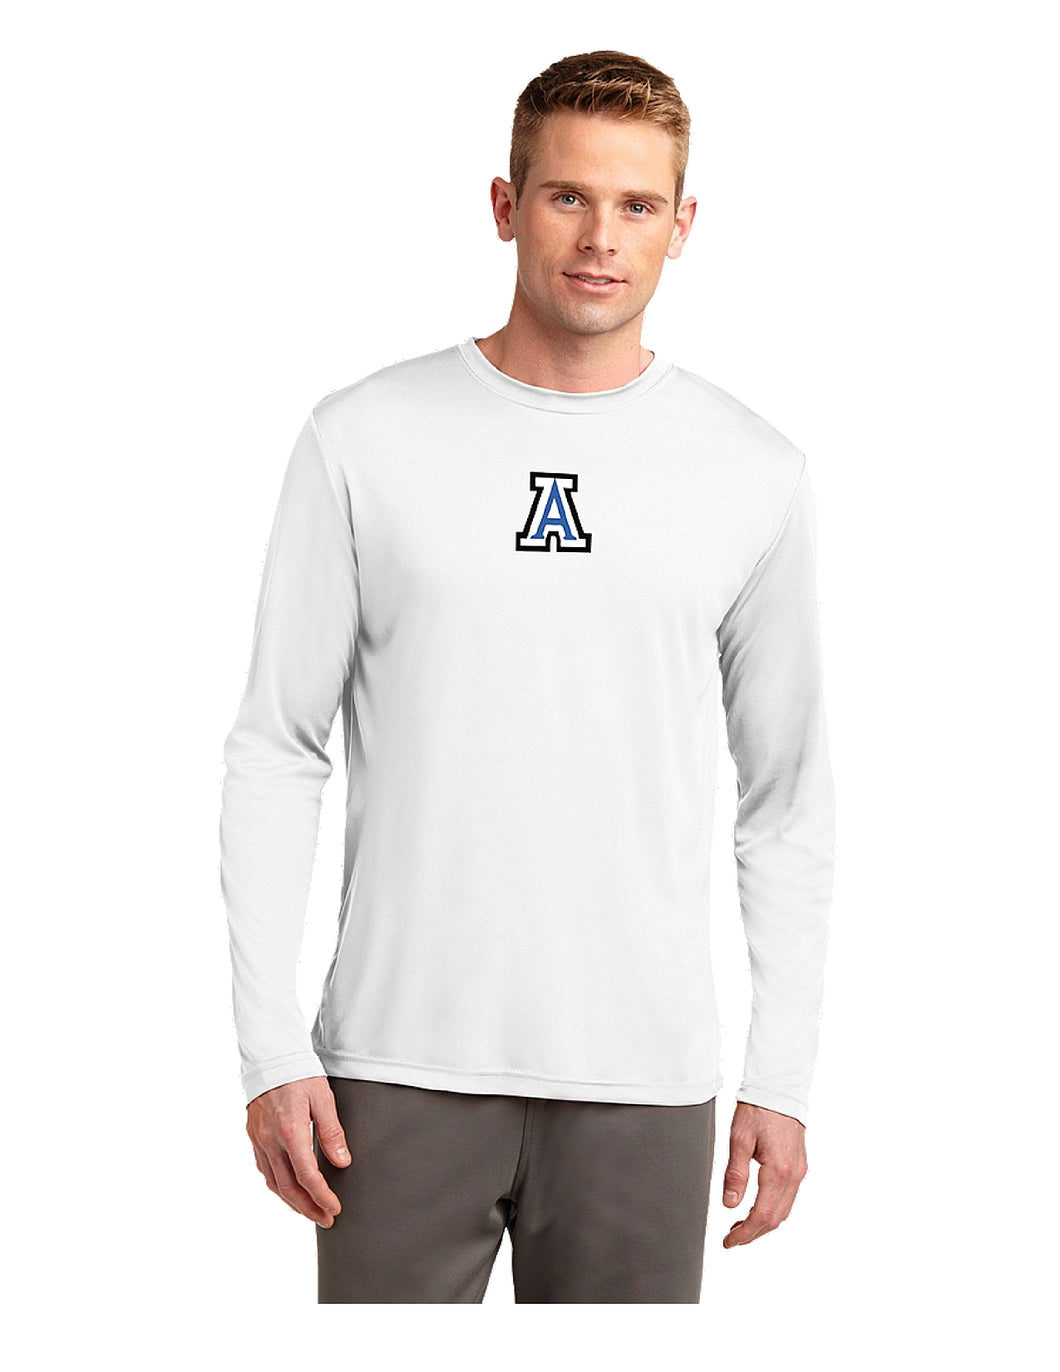 Sport-Tek® Long Sleeve PosiCharge® Competitor™ Tee White with Screen Printed Small